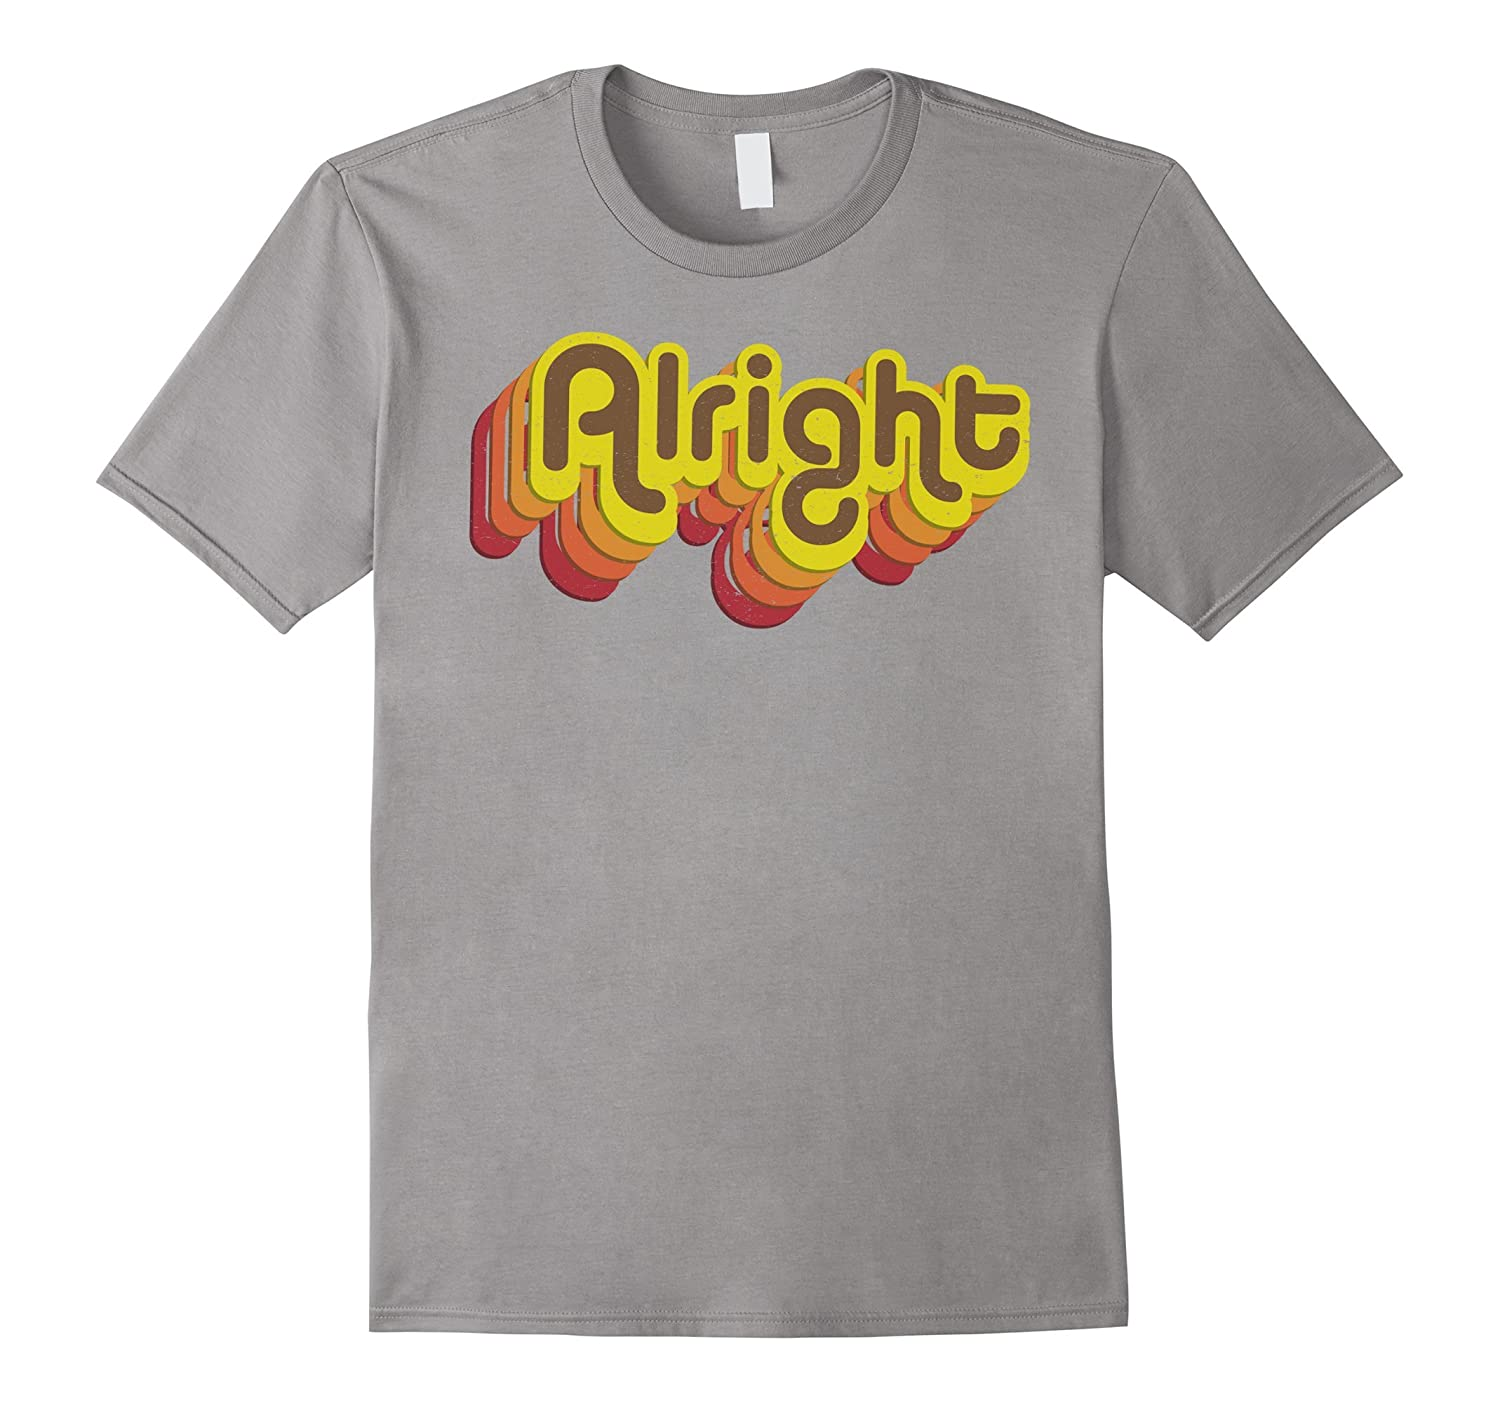 Alright Alright Shirt Funny Retro 70s Tee-FL